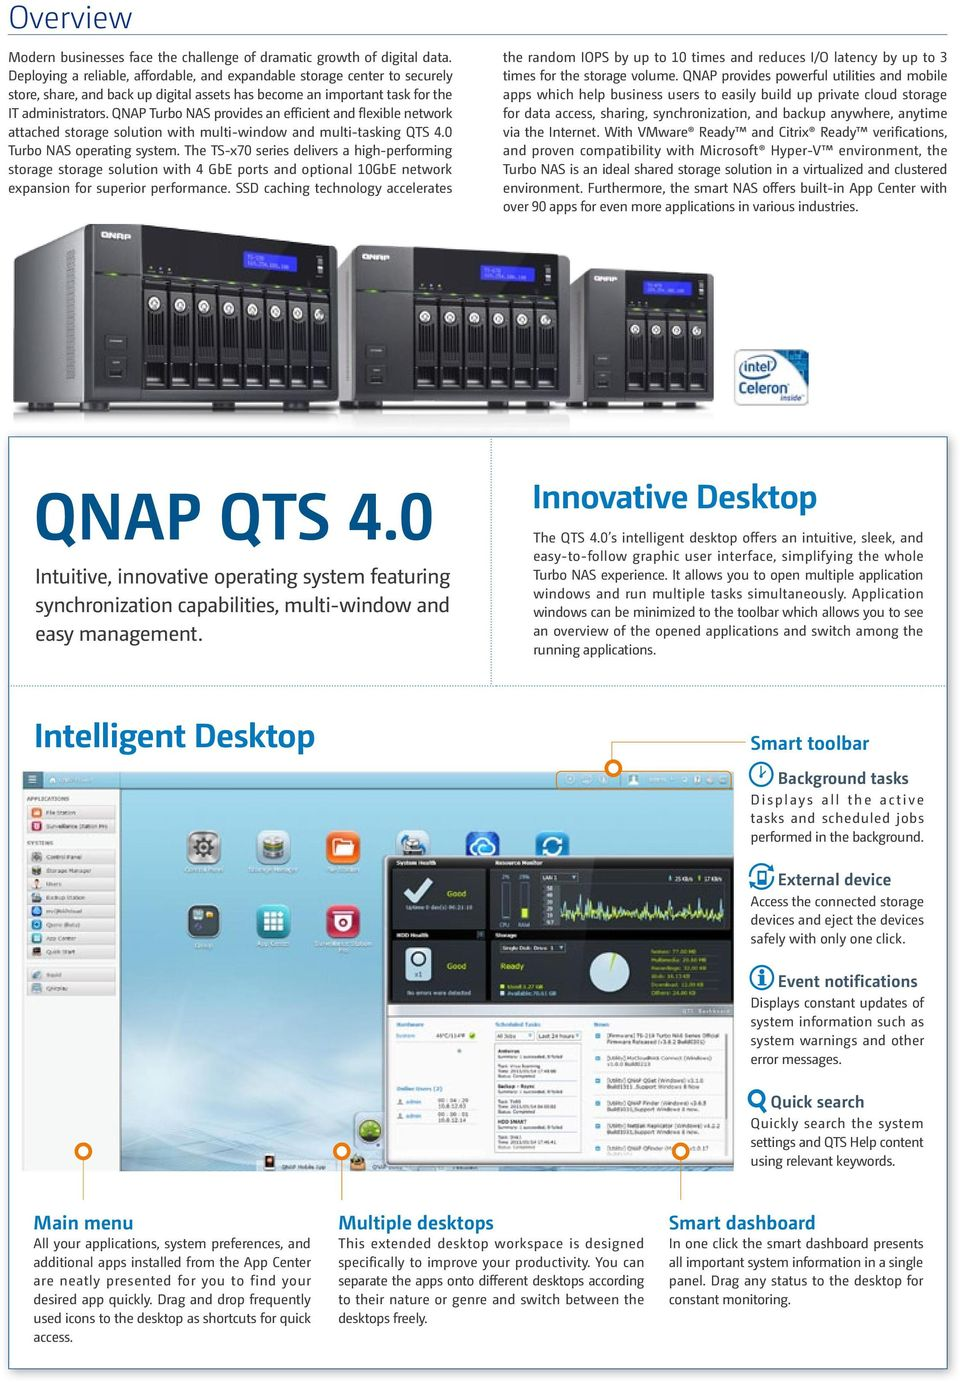 provides an efficient and flexible network attached storage solution with multi-window and multi-tasking QTS 4.0 Turbo NAS operating system.